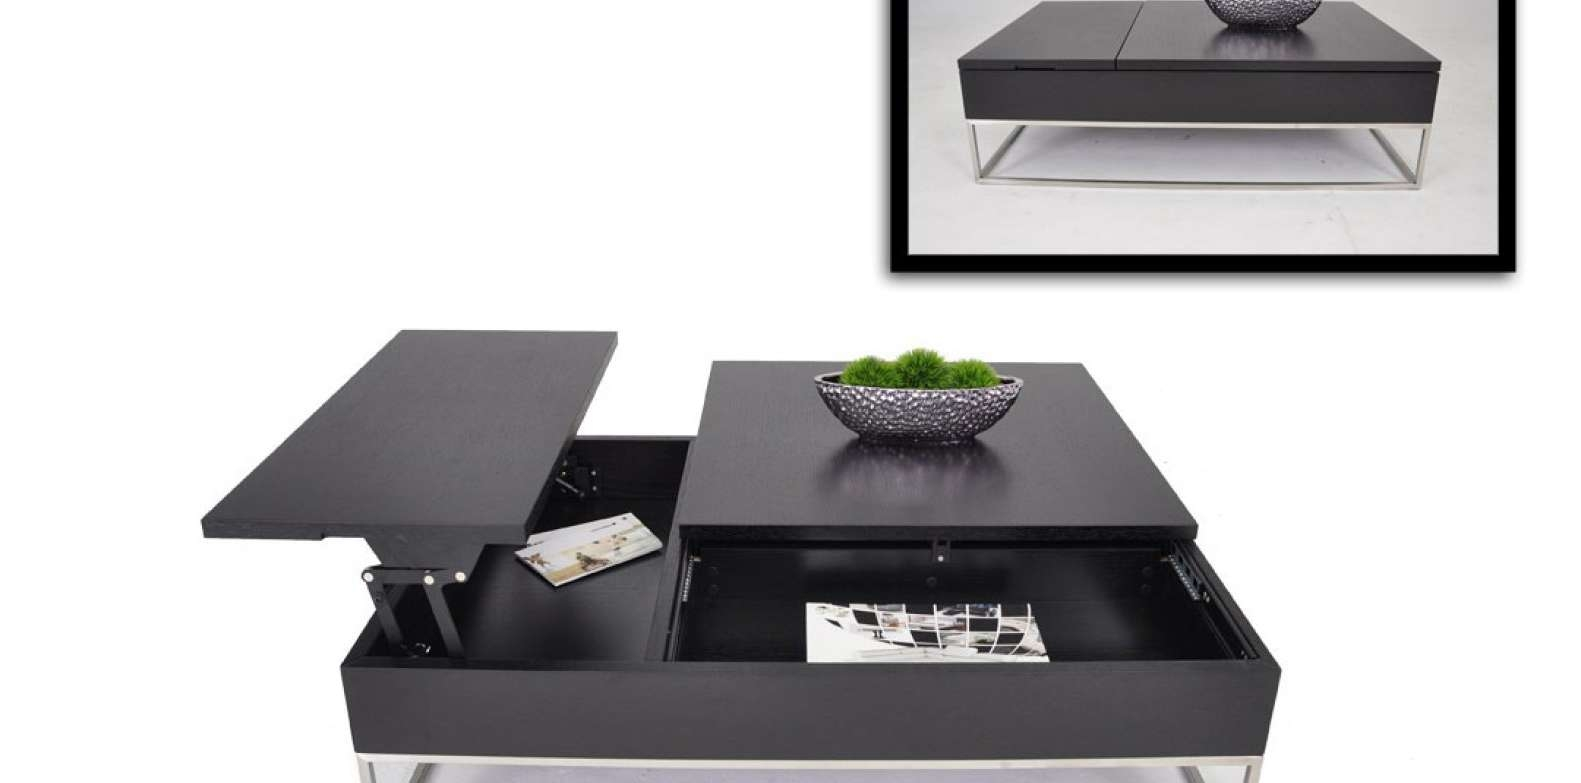 Fashionable Black Coffee Tables With Storage For Coffee Tables : Coffee Dining Table Combo Lift Top Black With (View 11 of 20)